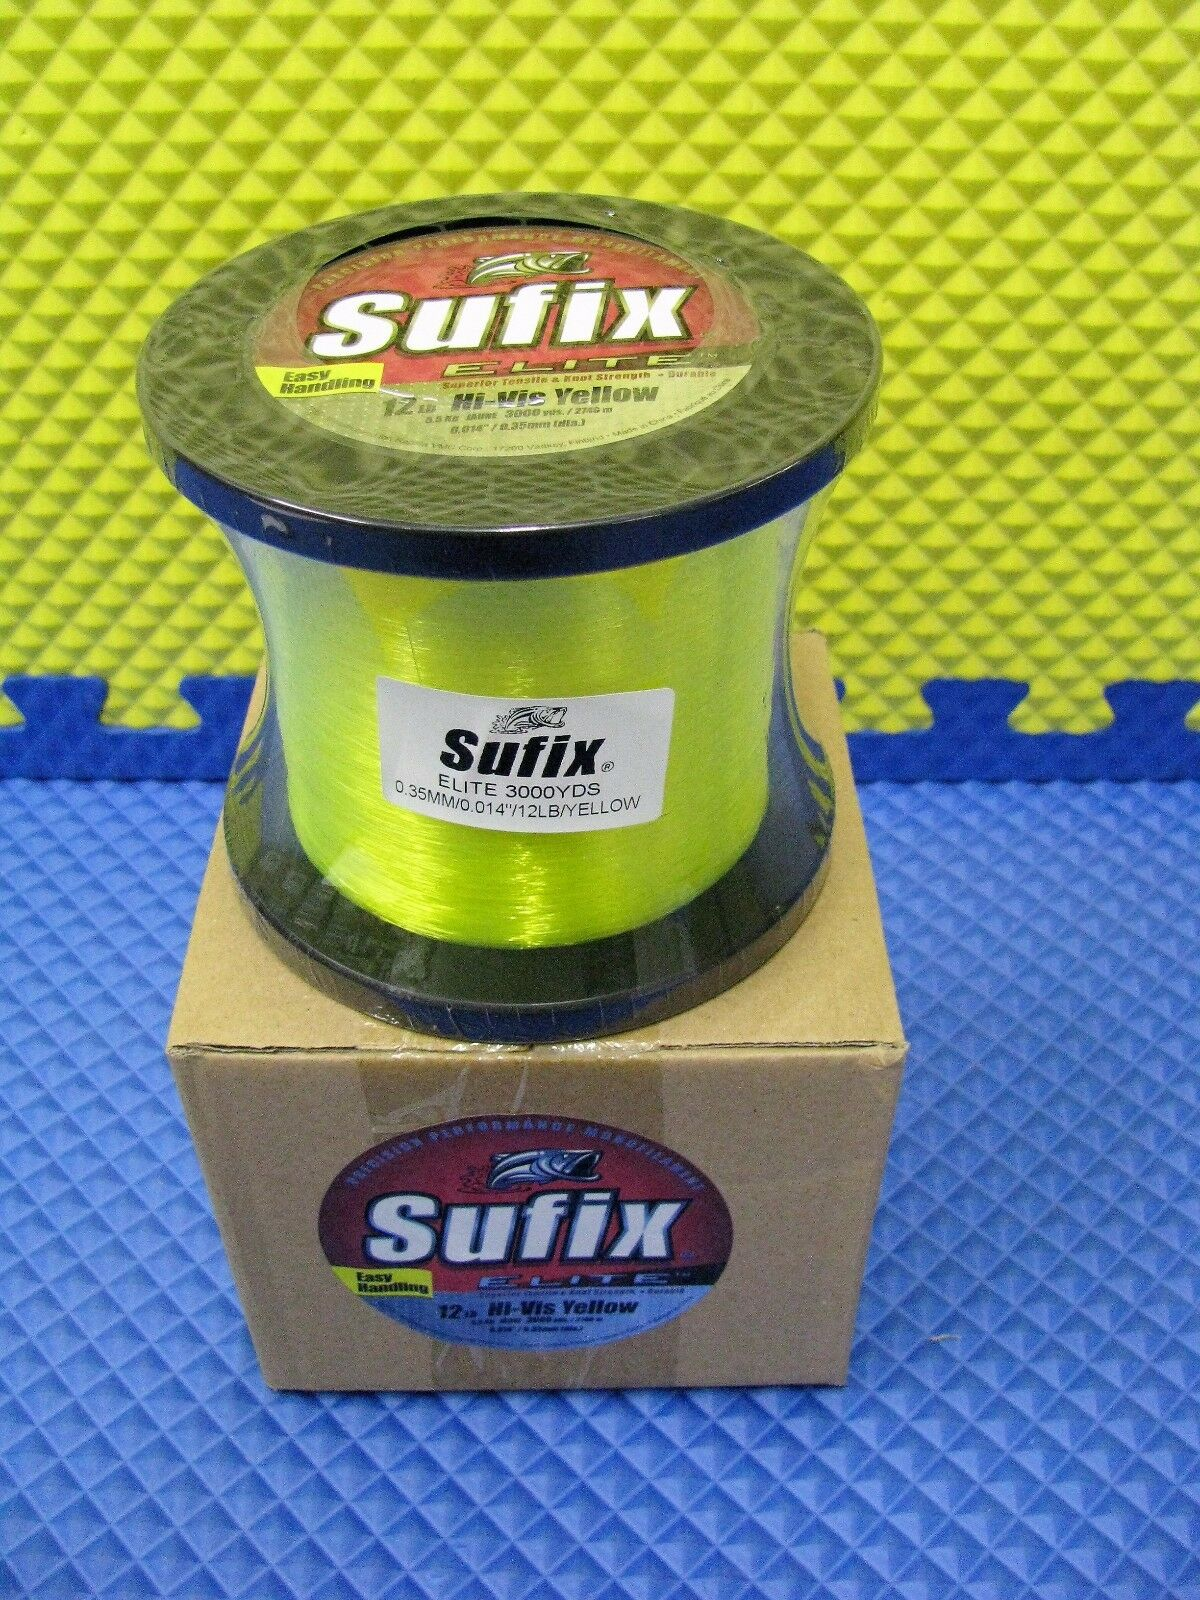 Sufix Elite 12 lb Hi-Vis Yellow Fishing Line 3000 yd  Spool Y  no.1 online